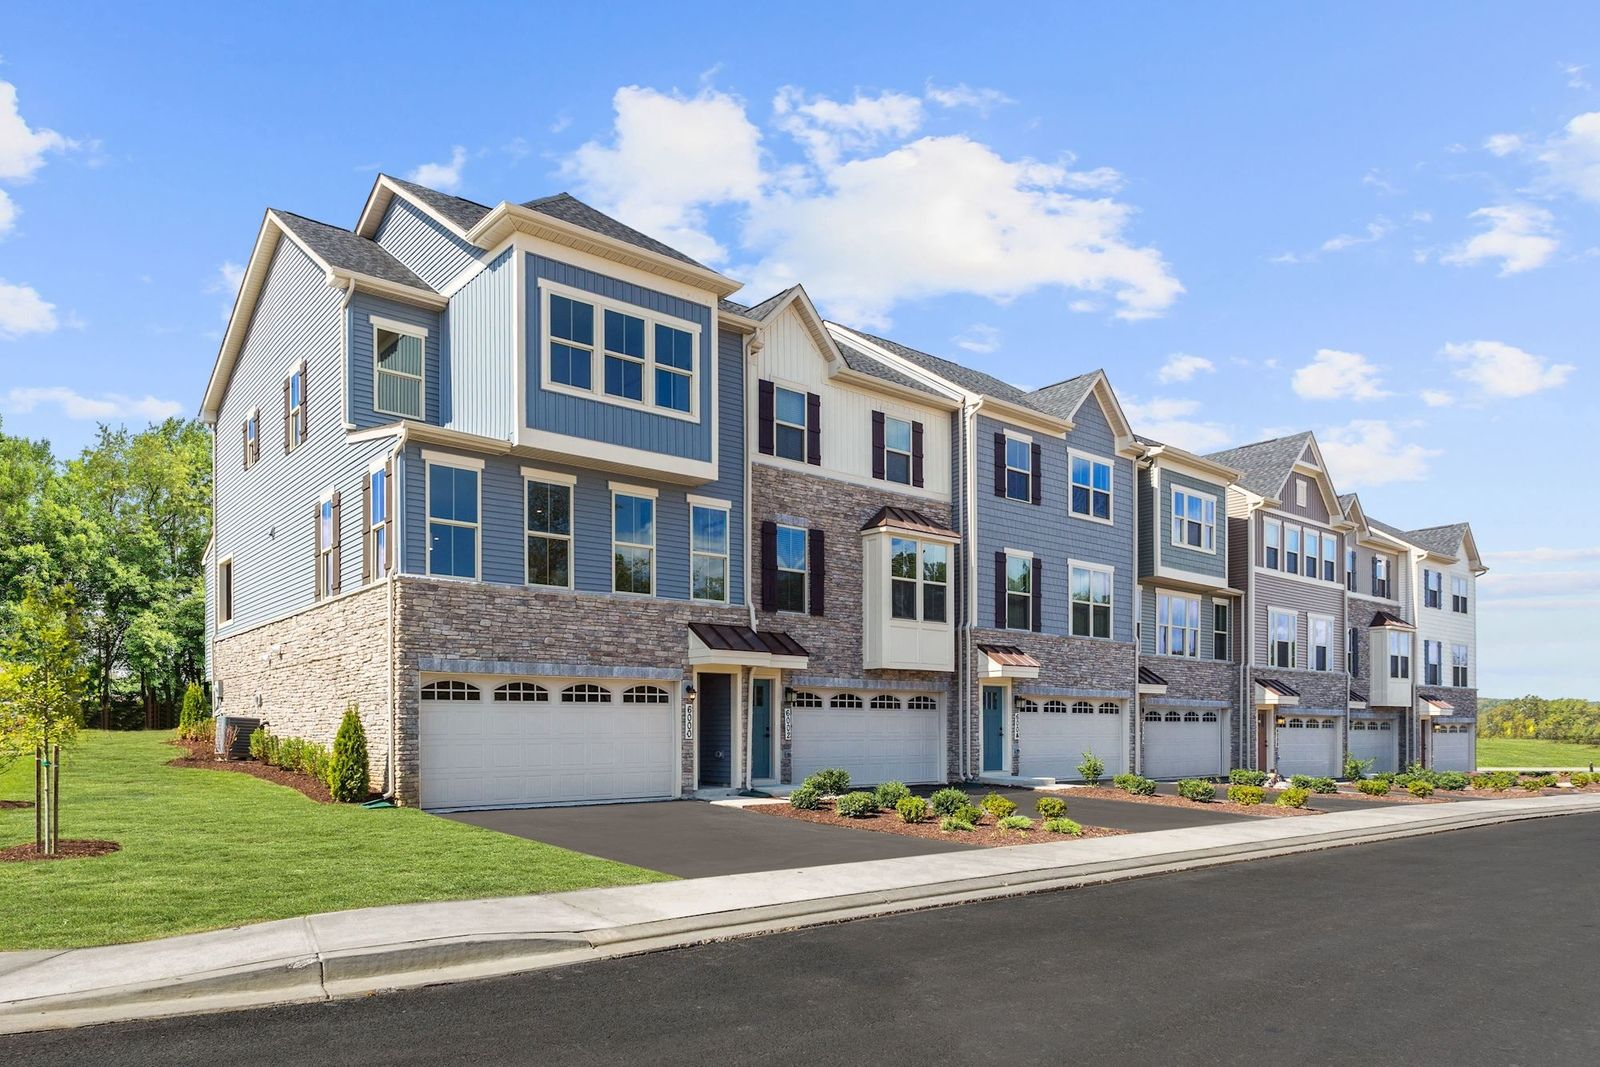 Welcome to Mountain Ridge:Spacious new townhomes with 2-car garages in a beautiful, tree-lined community with outdoor space and sidewalks, conveniently located 1 mile from Rt. 80! Click here to schedule an appointment today!